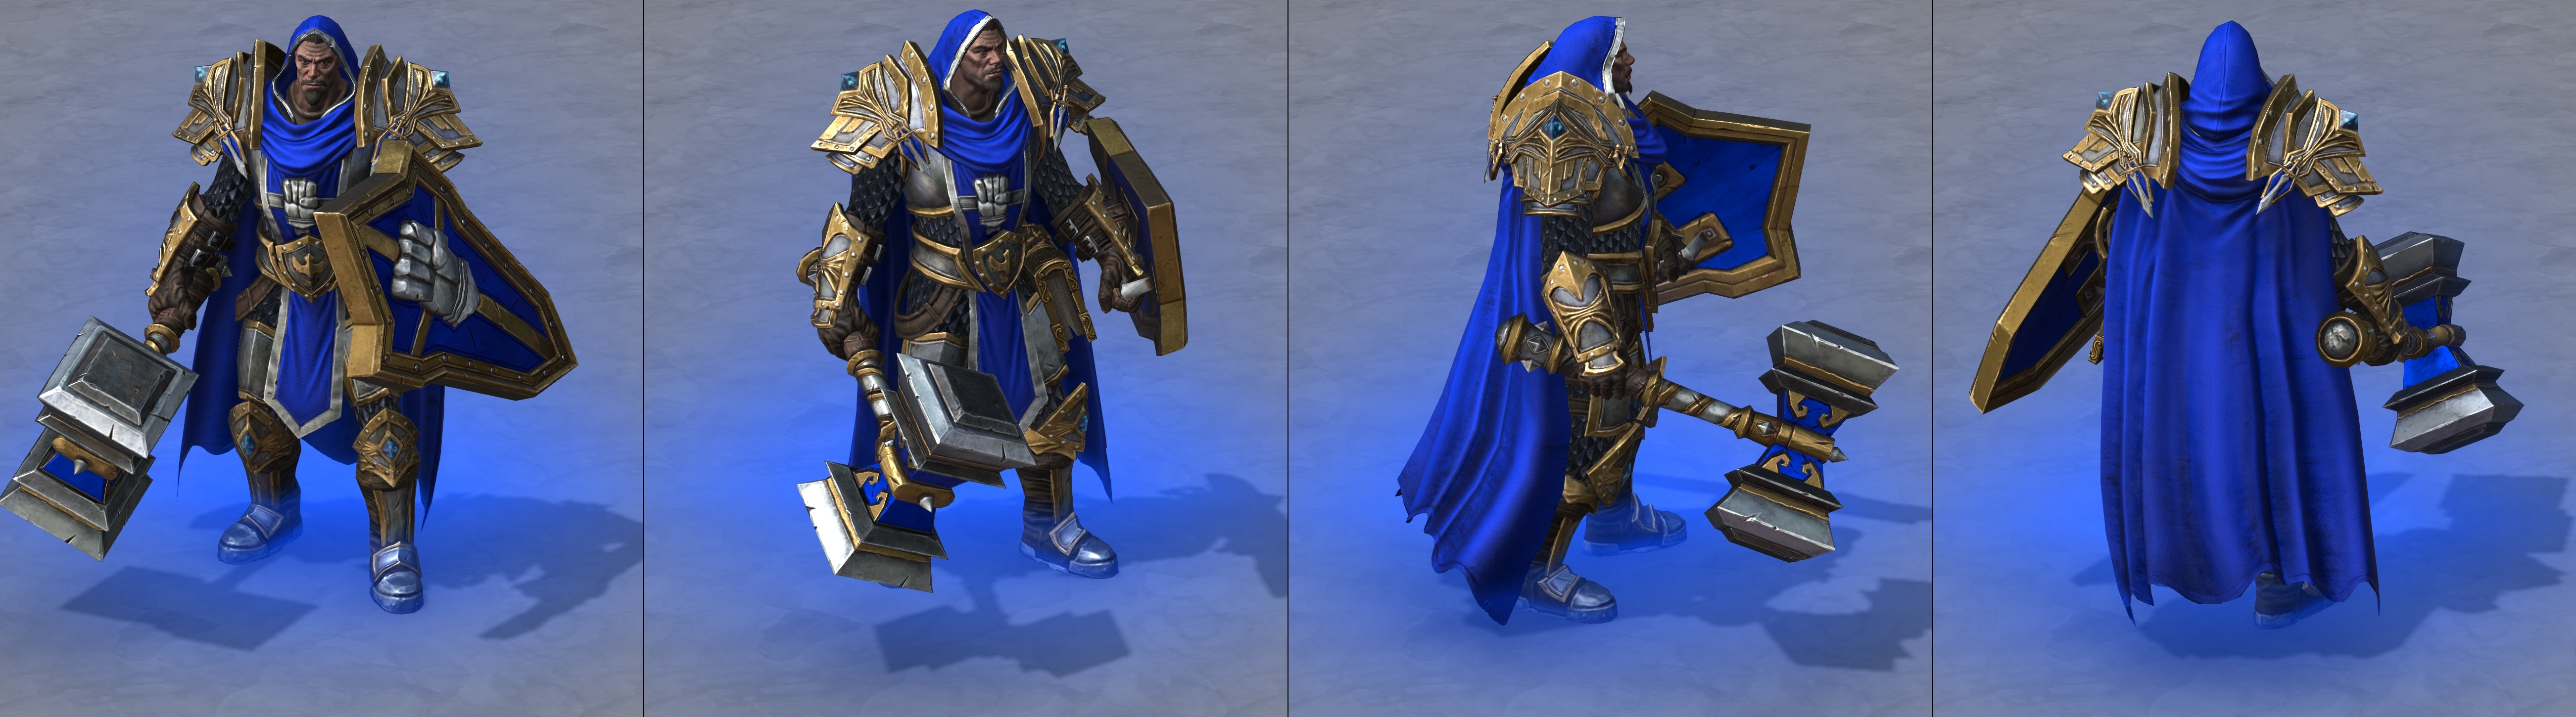 Warcraft III Reforged : Magroth the Defender